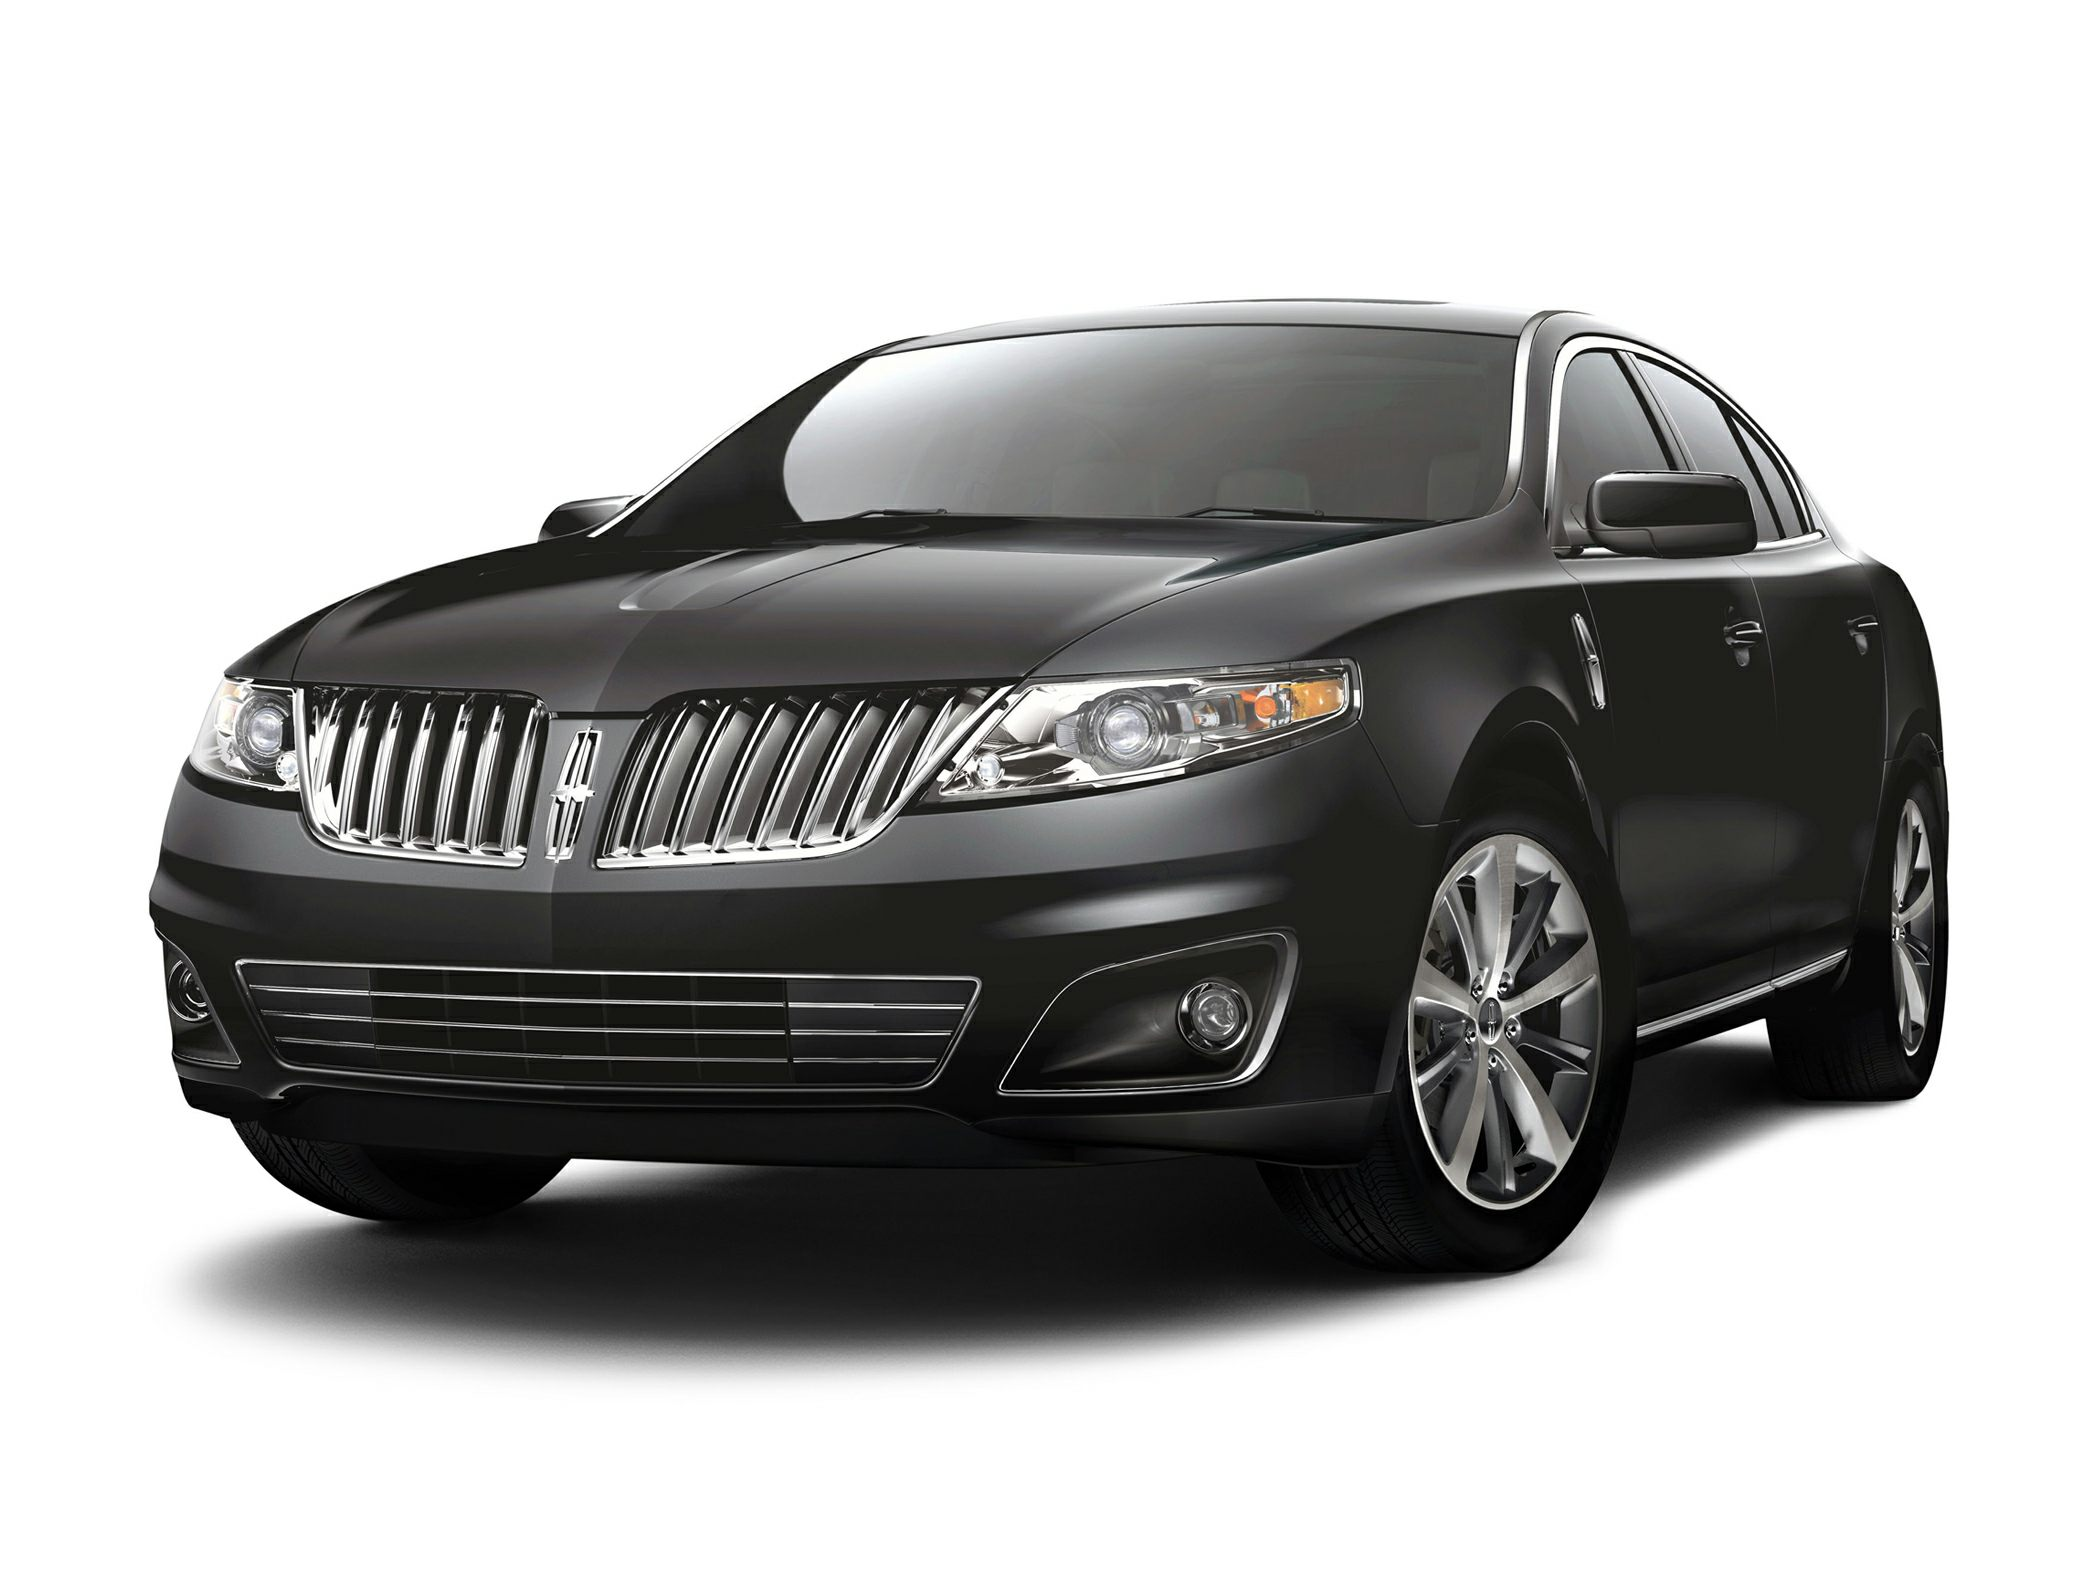 2011 Lincoln MKS Base Black One-owner Black Knight New Arrival Are you still driving around tha